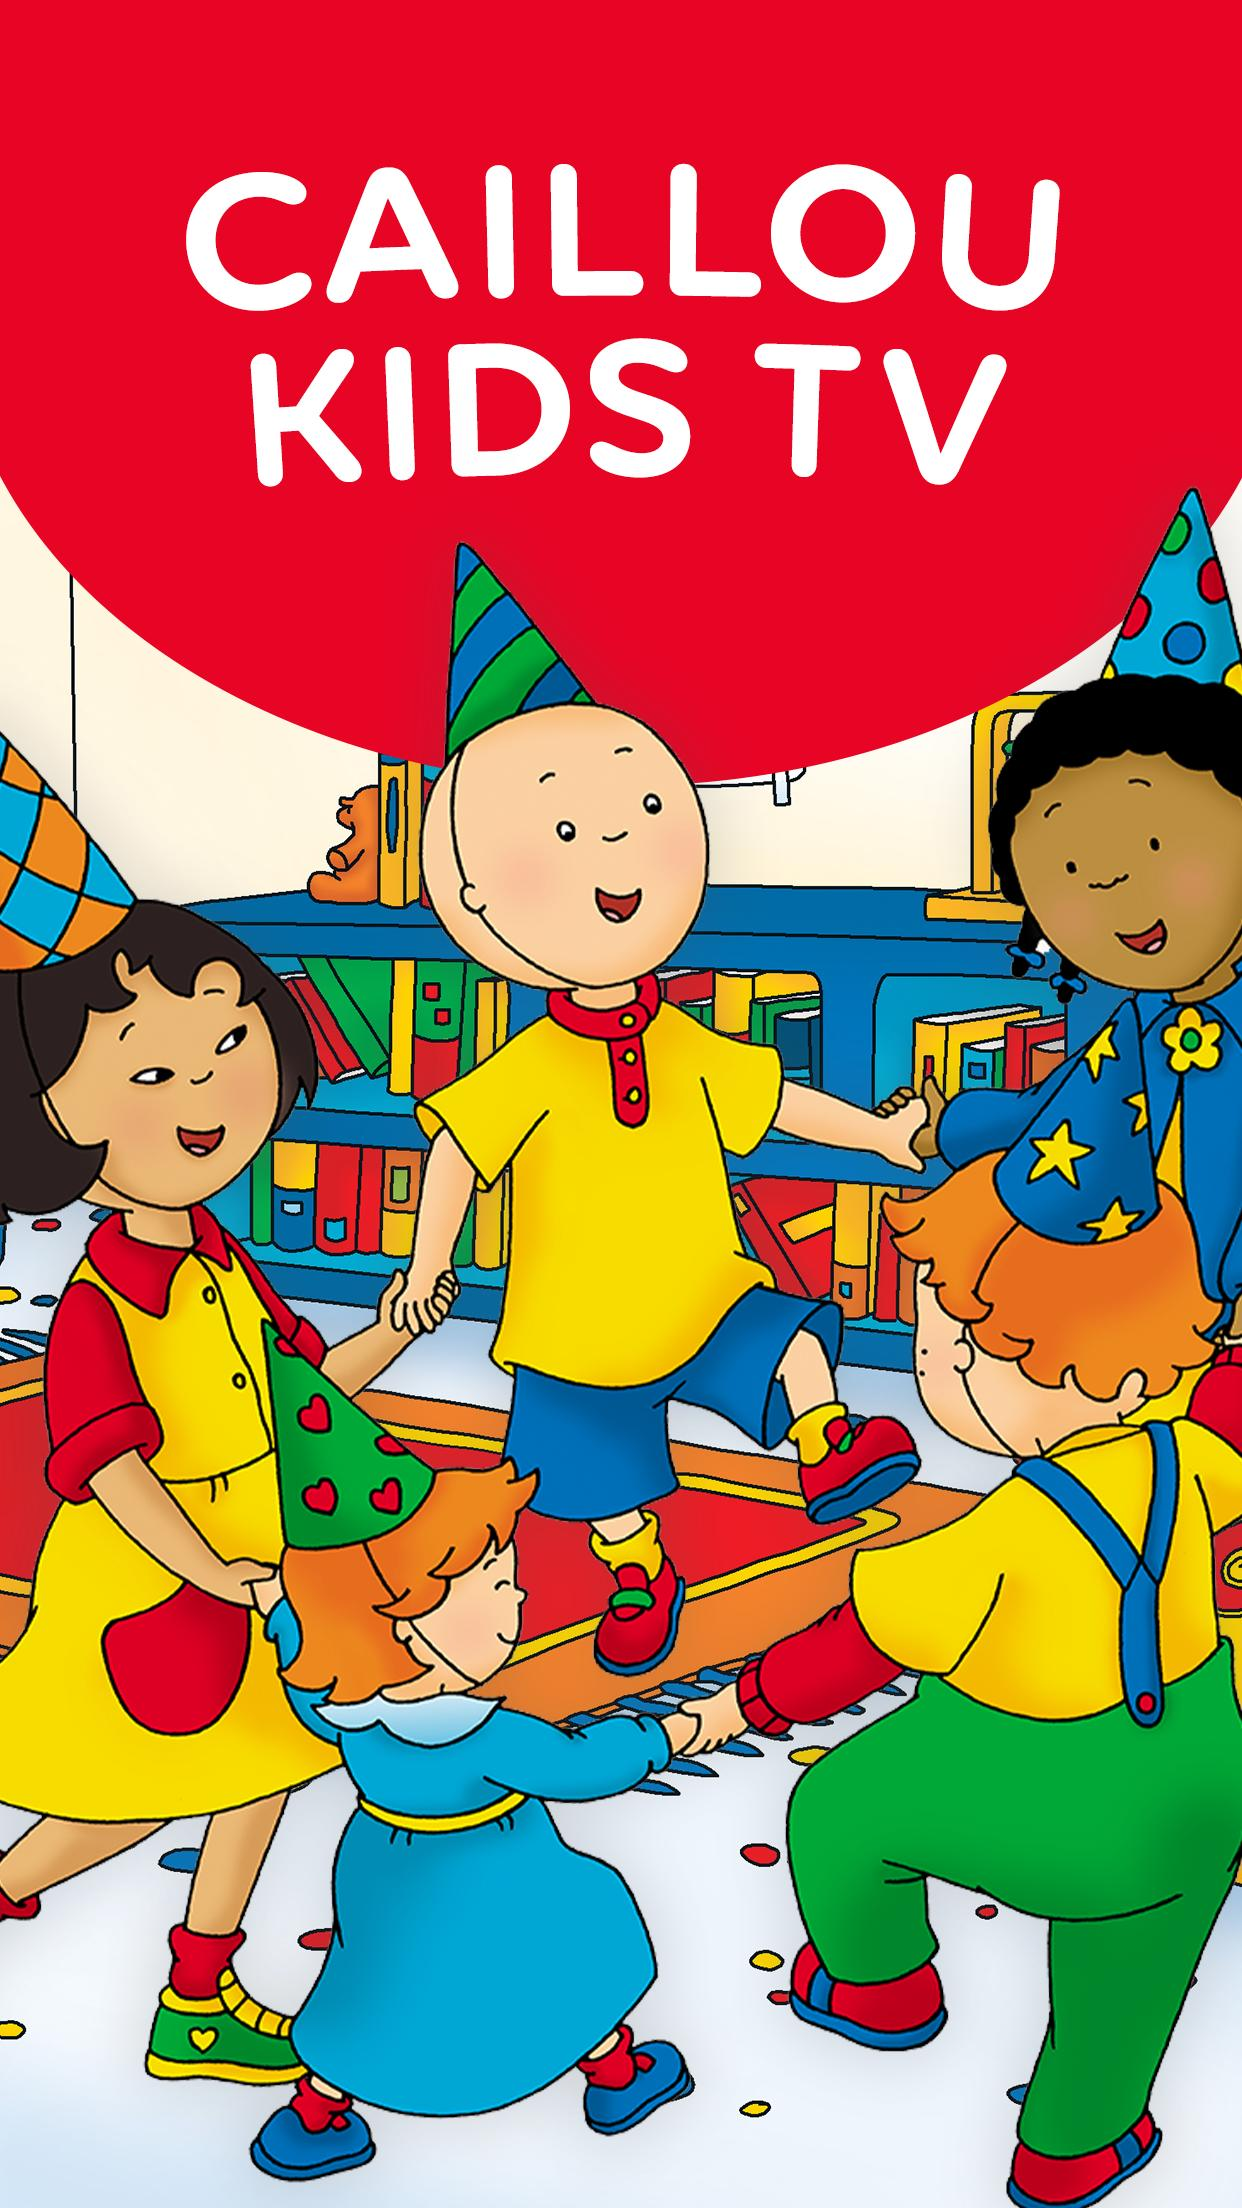 Caillou Joins Roblox Caillou Kids Tv For Android Apk Download